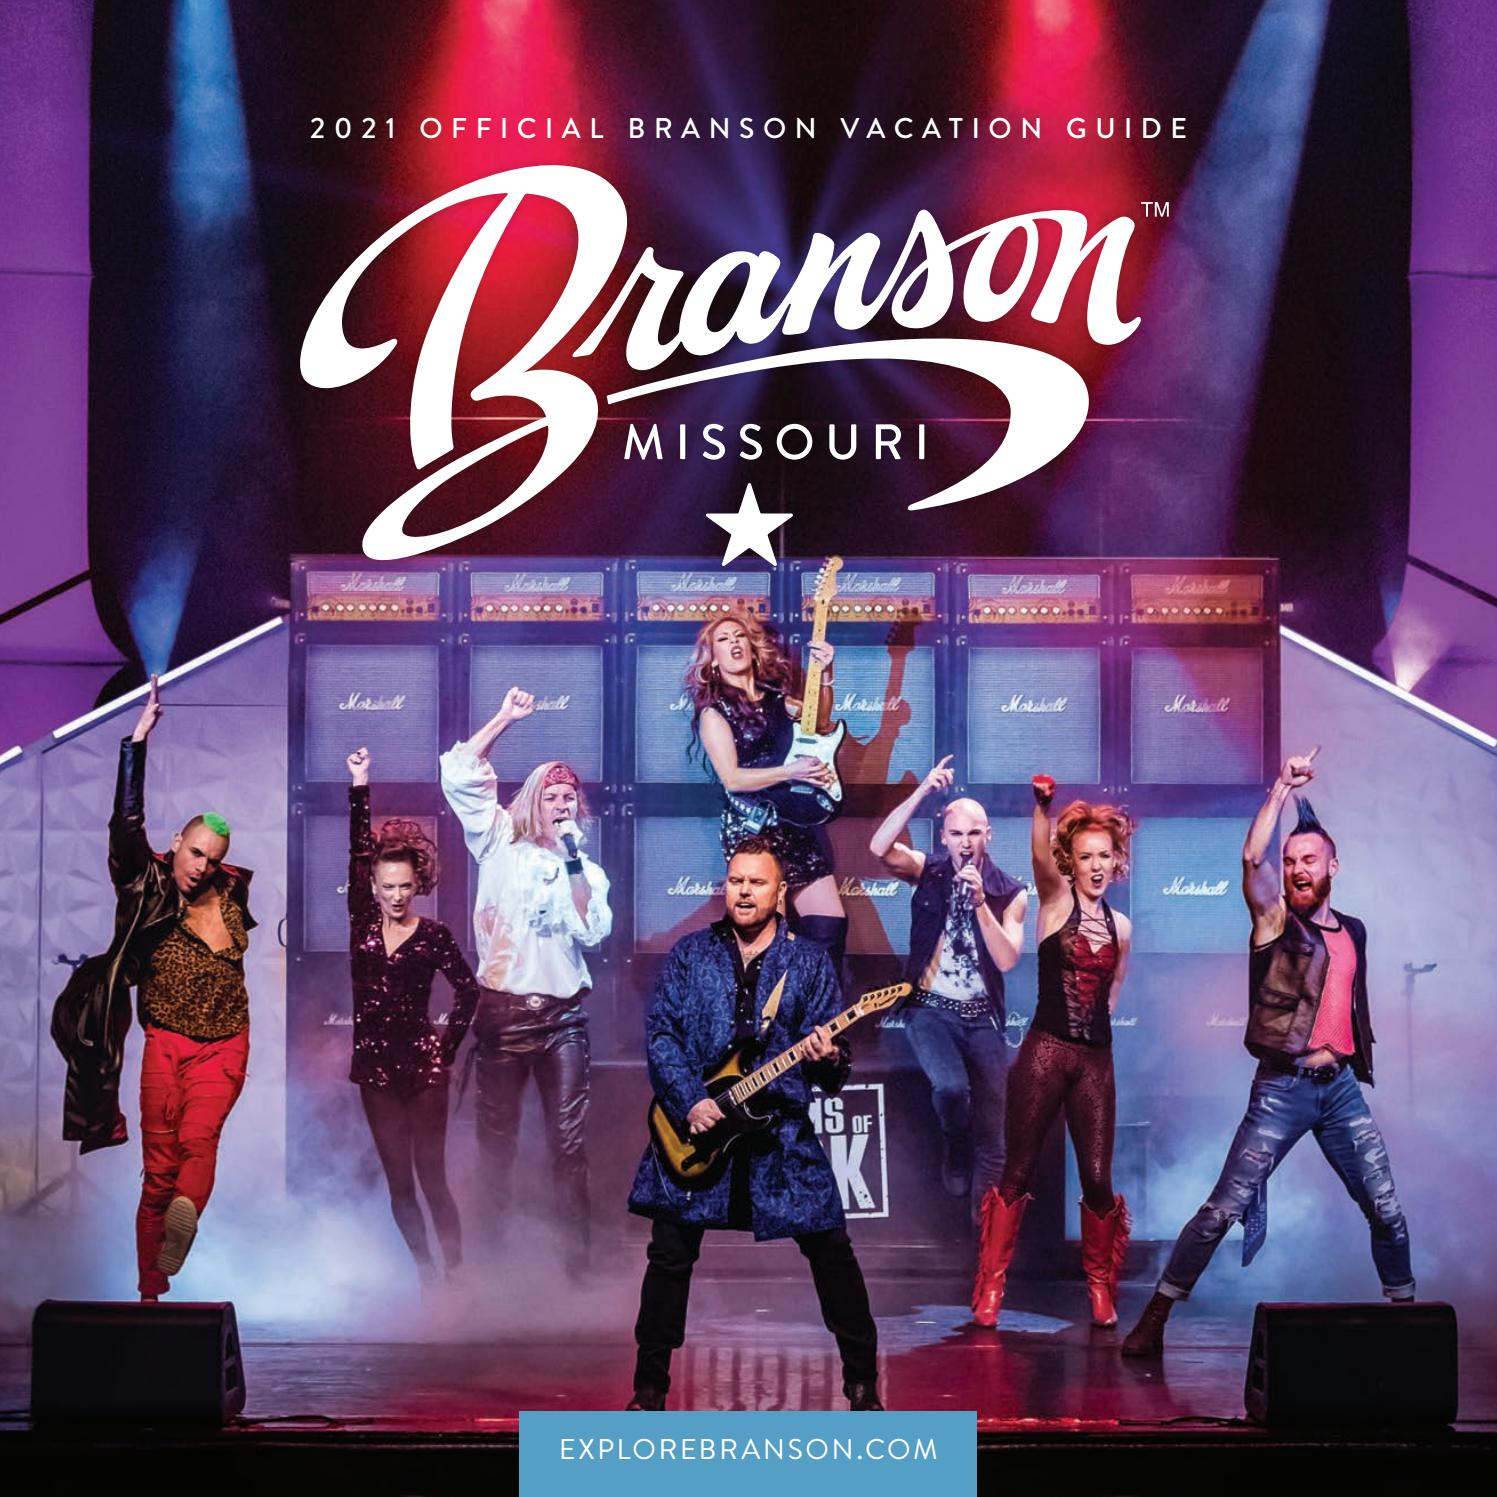 The Cost To See The Christmas Lights In Brsnson 2021 2021 Branson Vacation Guide By Branson Convention And Visitors Bureau Issuu